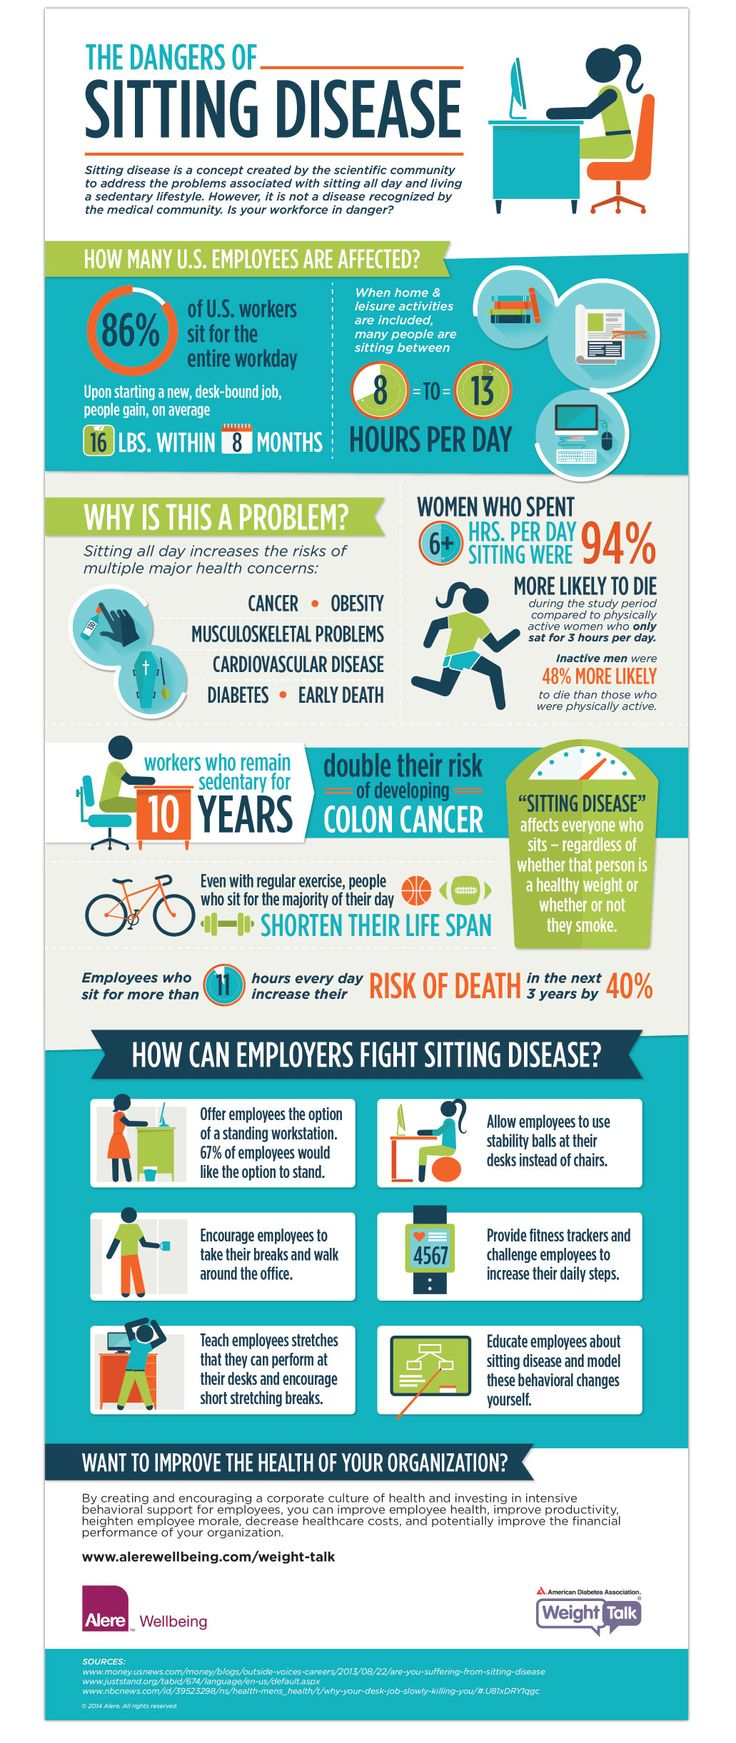 The Dangers of Sitting Disease infographic Awesome